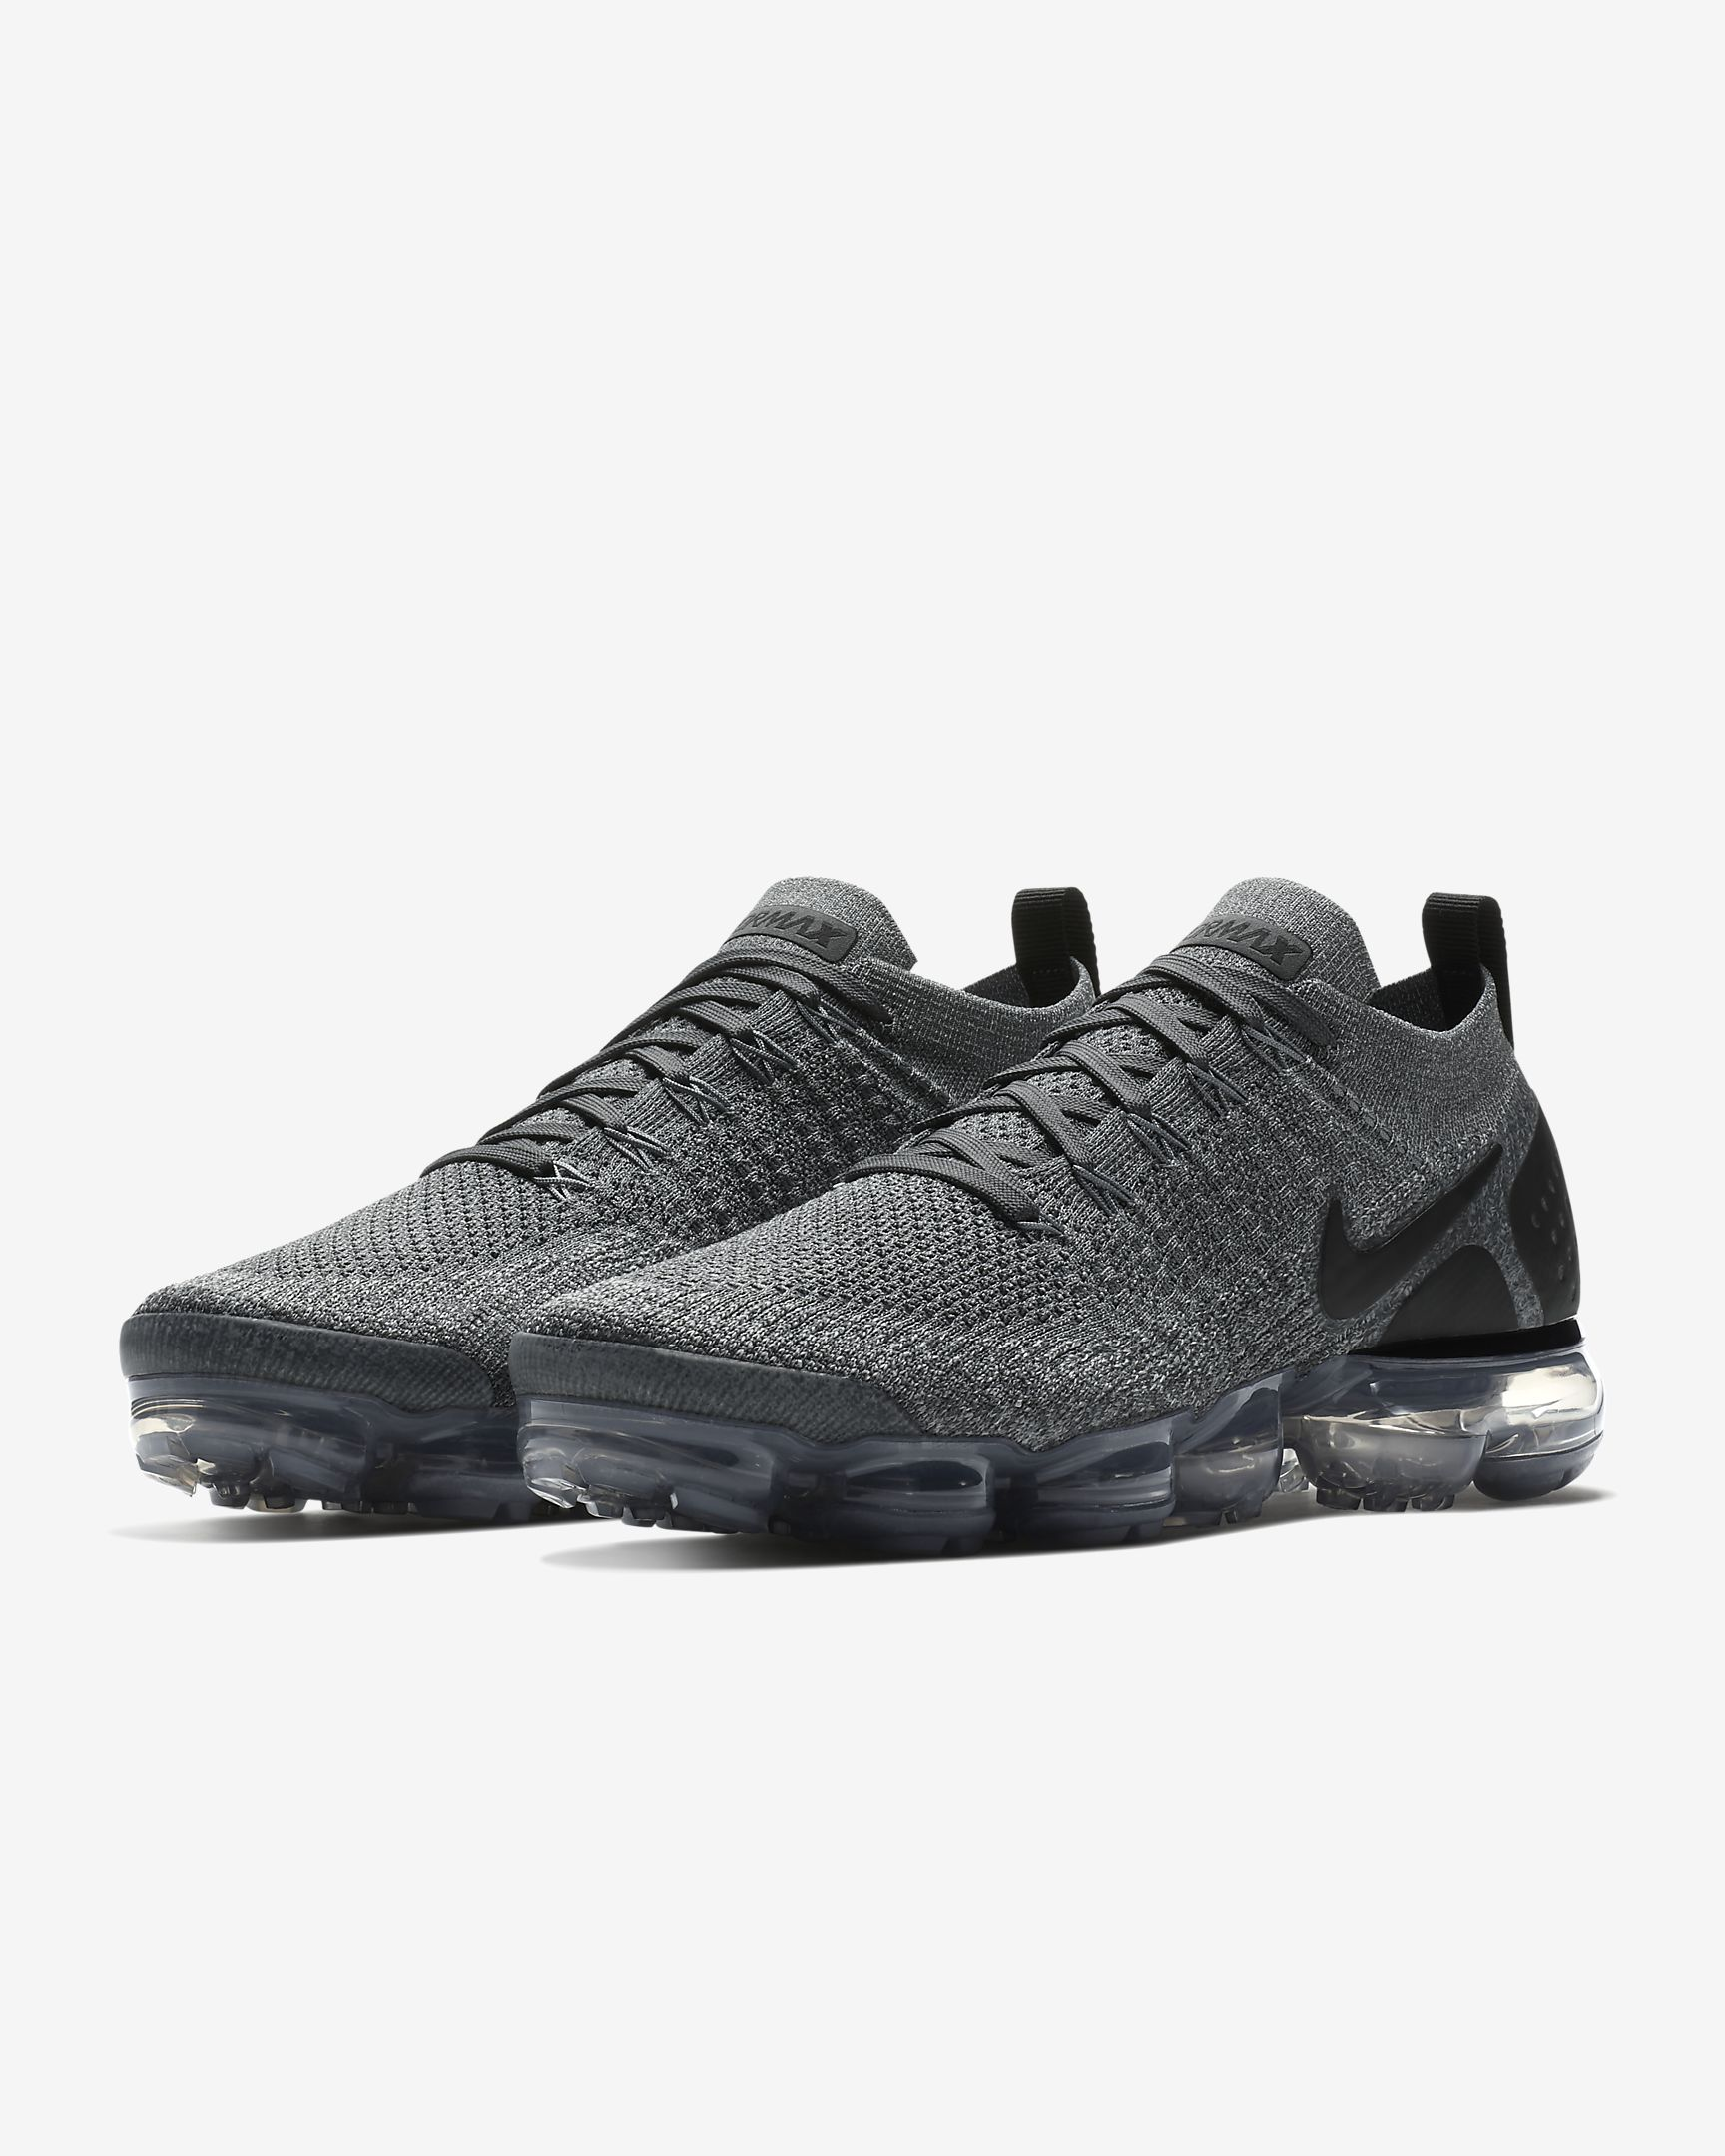 NIKE AIR VAPORMAX V2 GREY BLACK